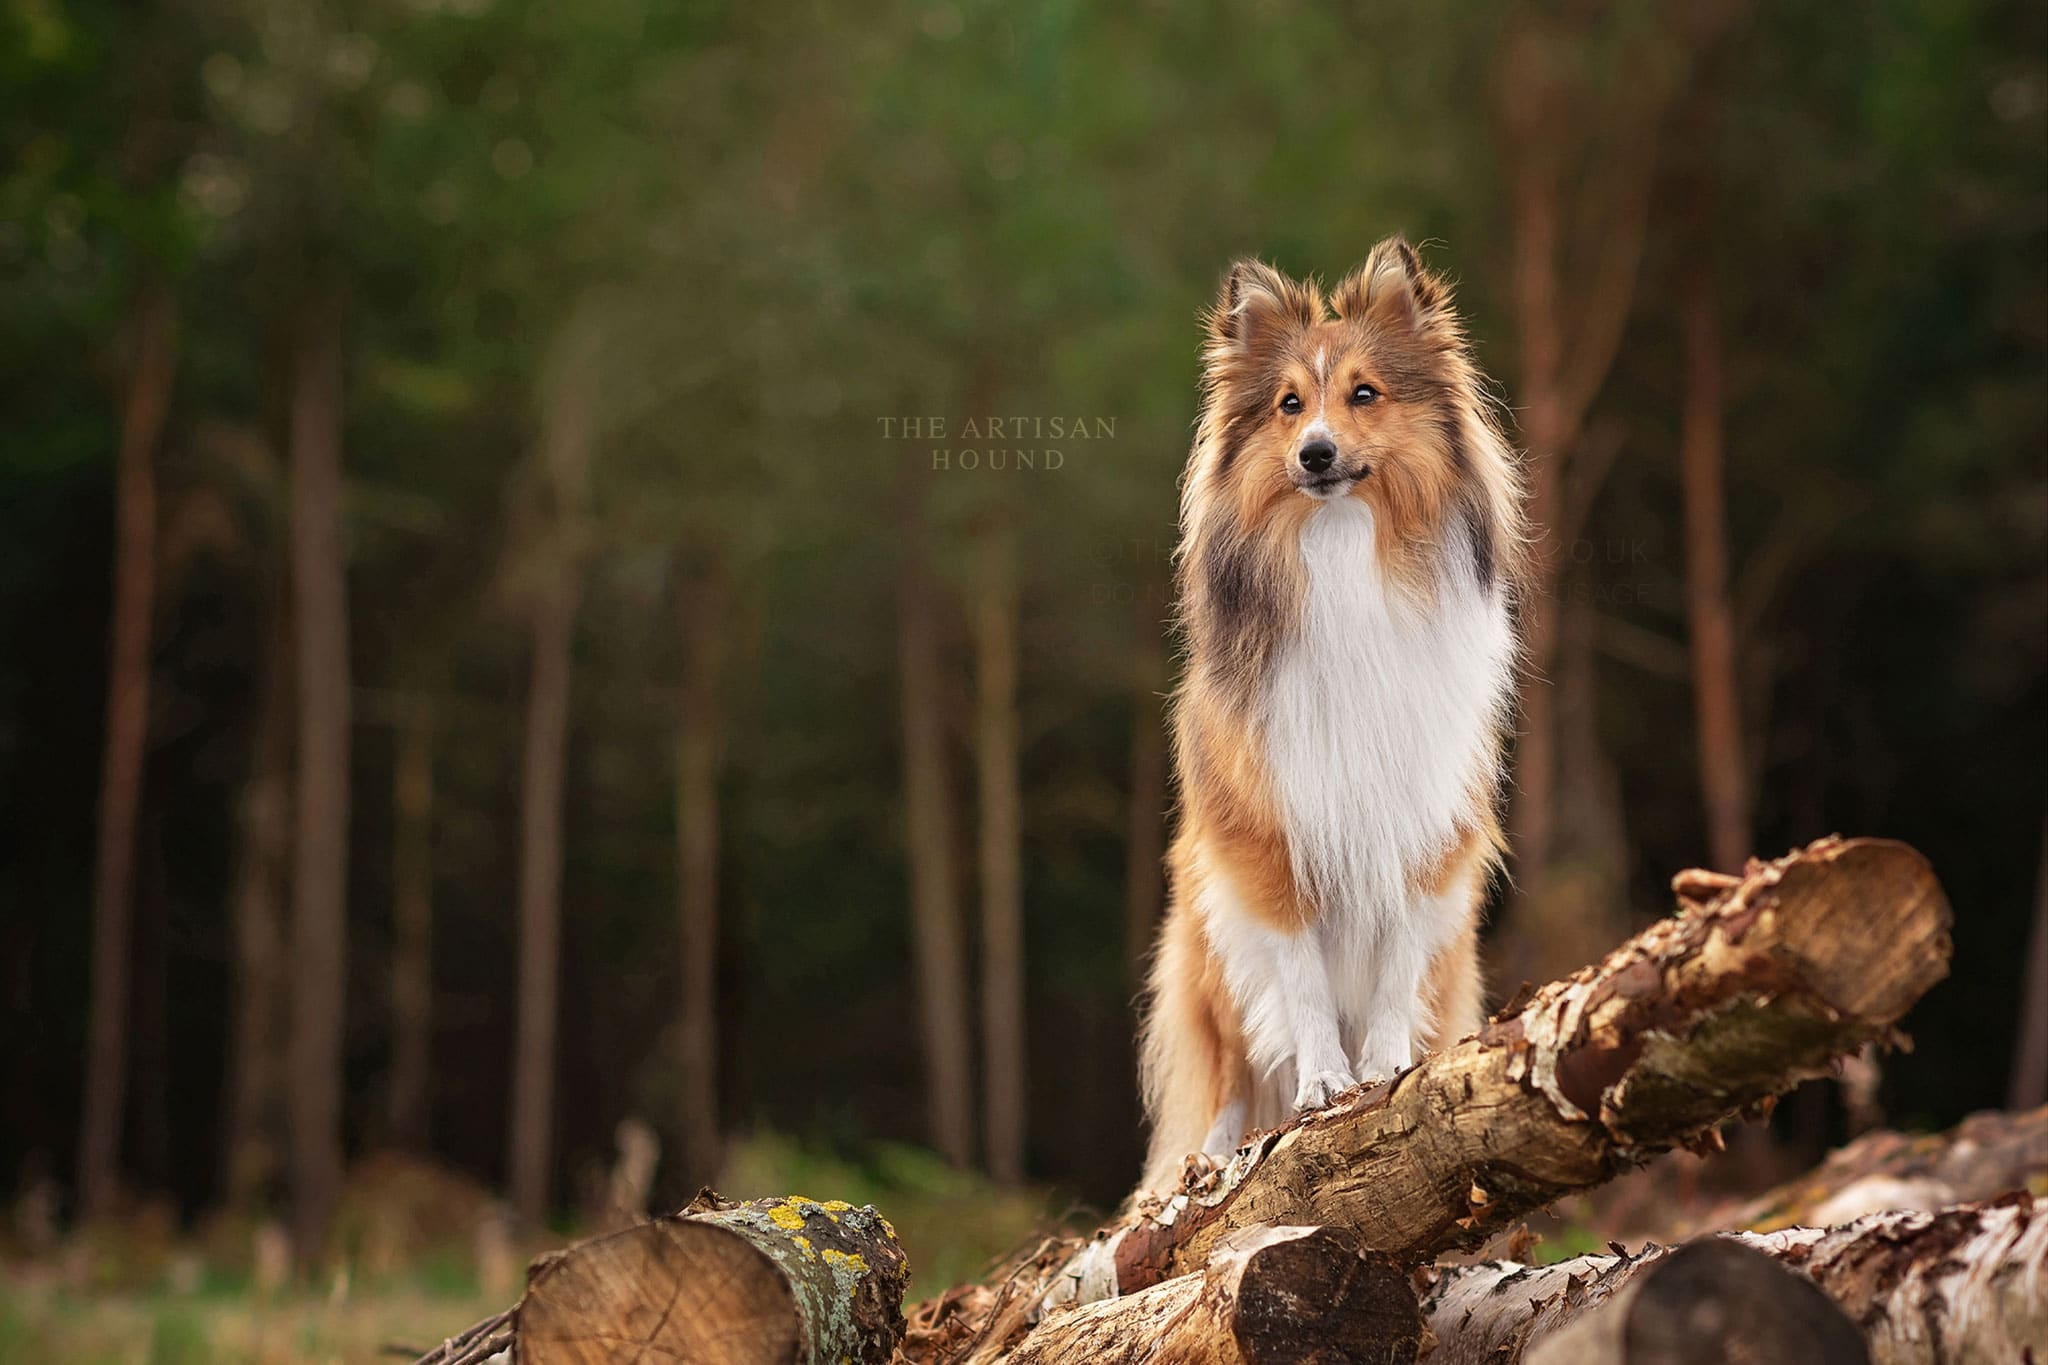 Shetland Sheepdog standing on pile of logs in Northampton woodland